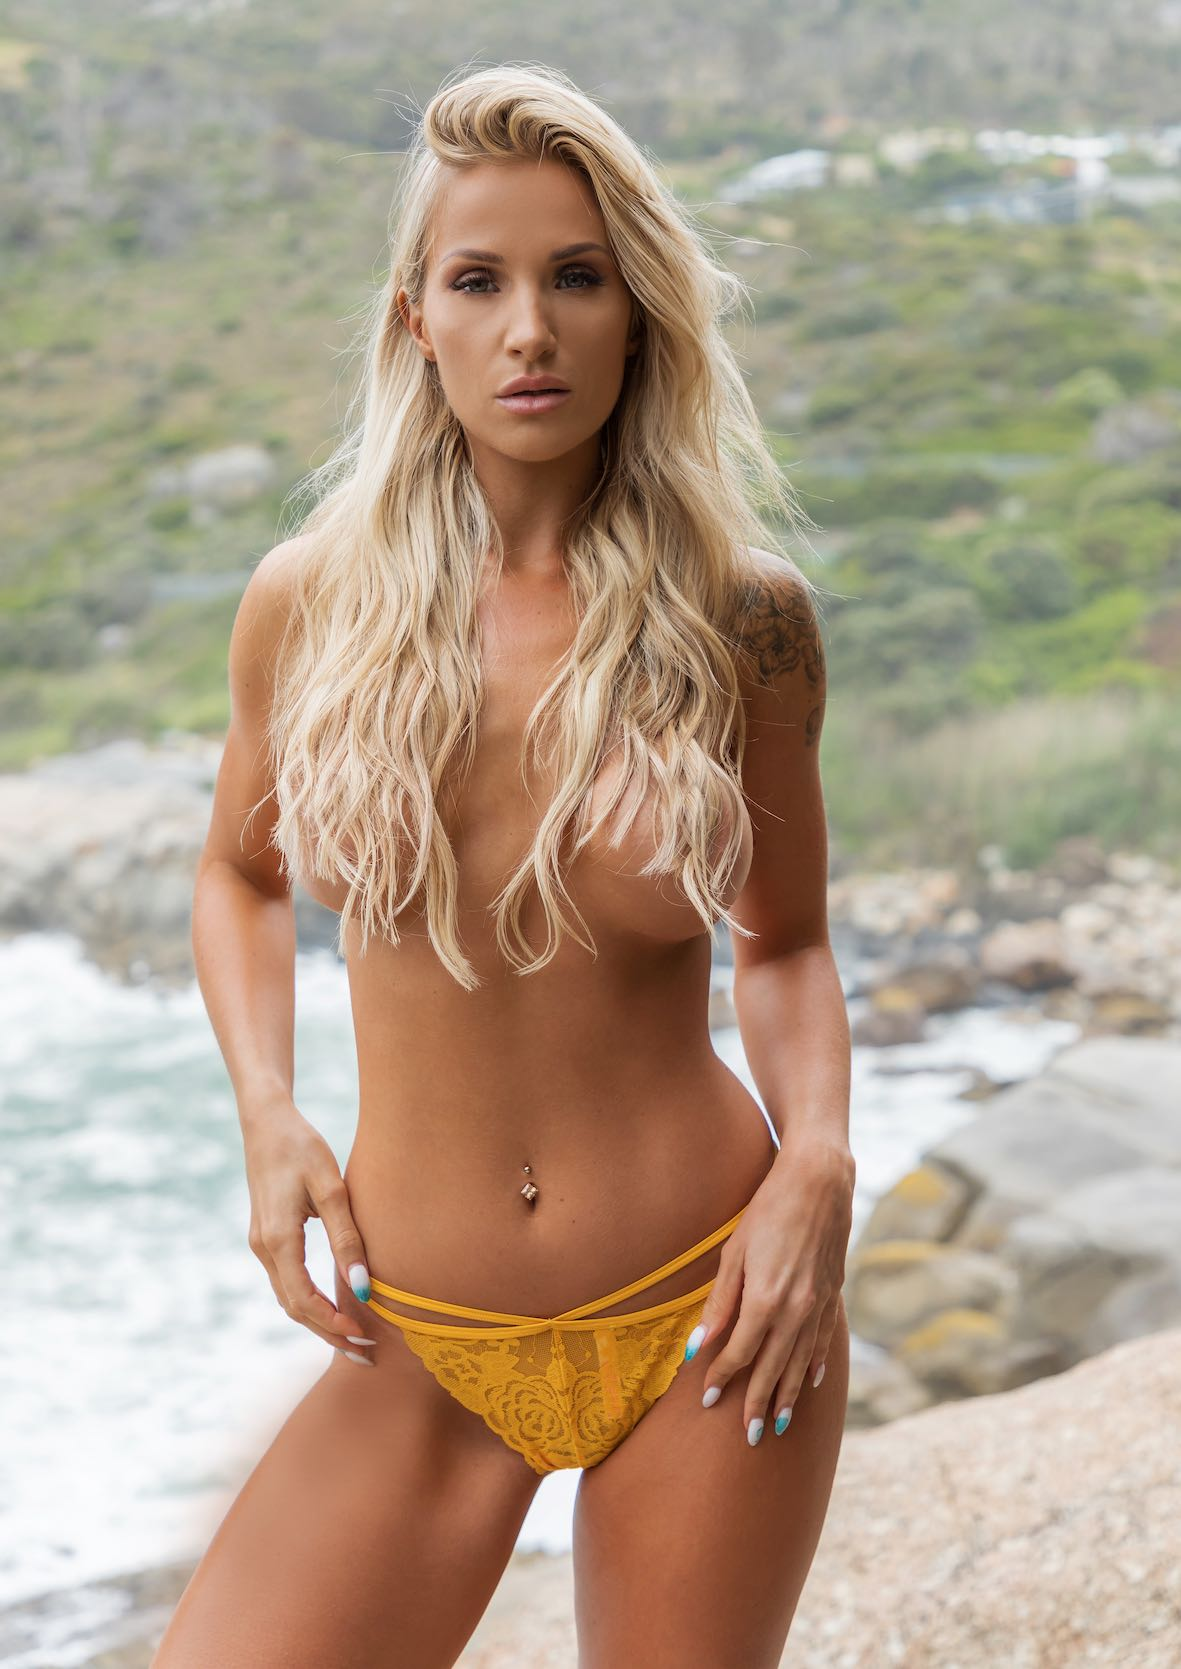 Meet Kayla Baker in our SA Babes feature